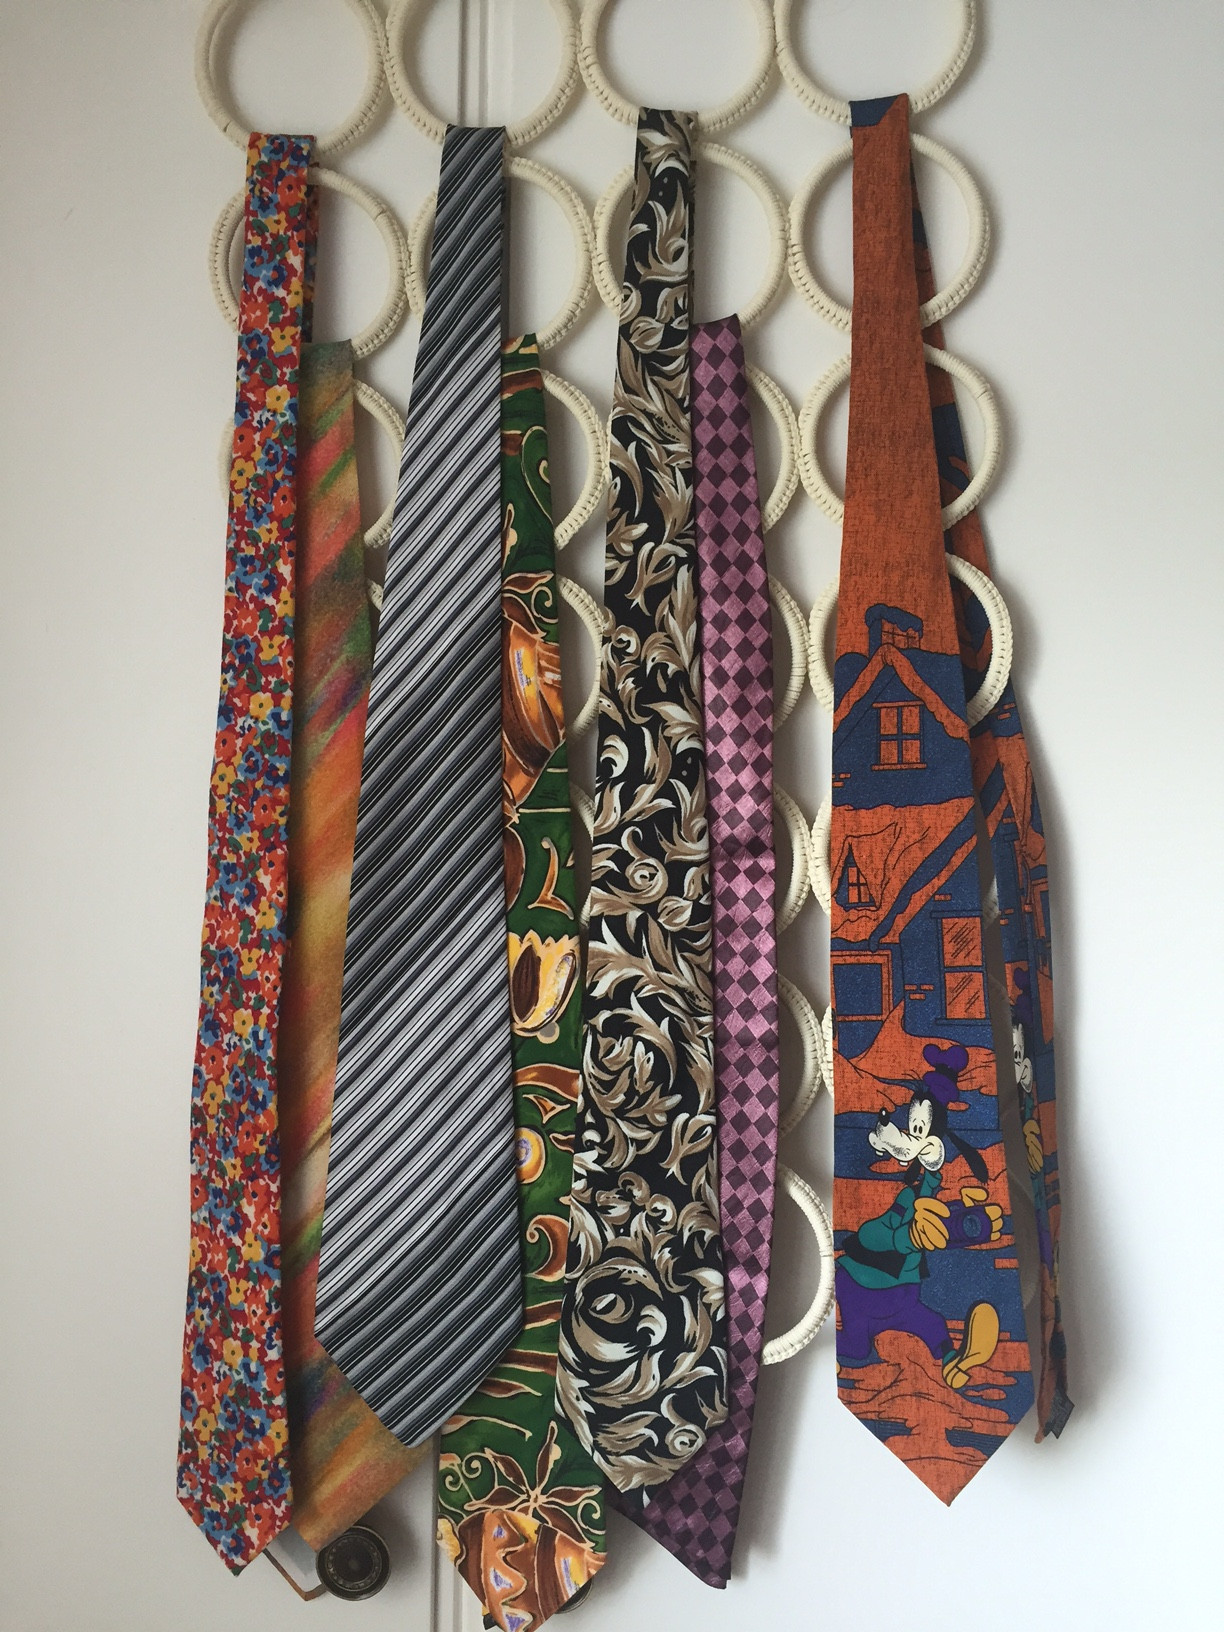 Collection of ties in my possession:) All are second hand and thus with own story each ;)